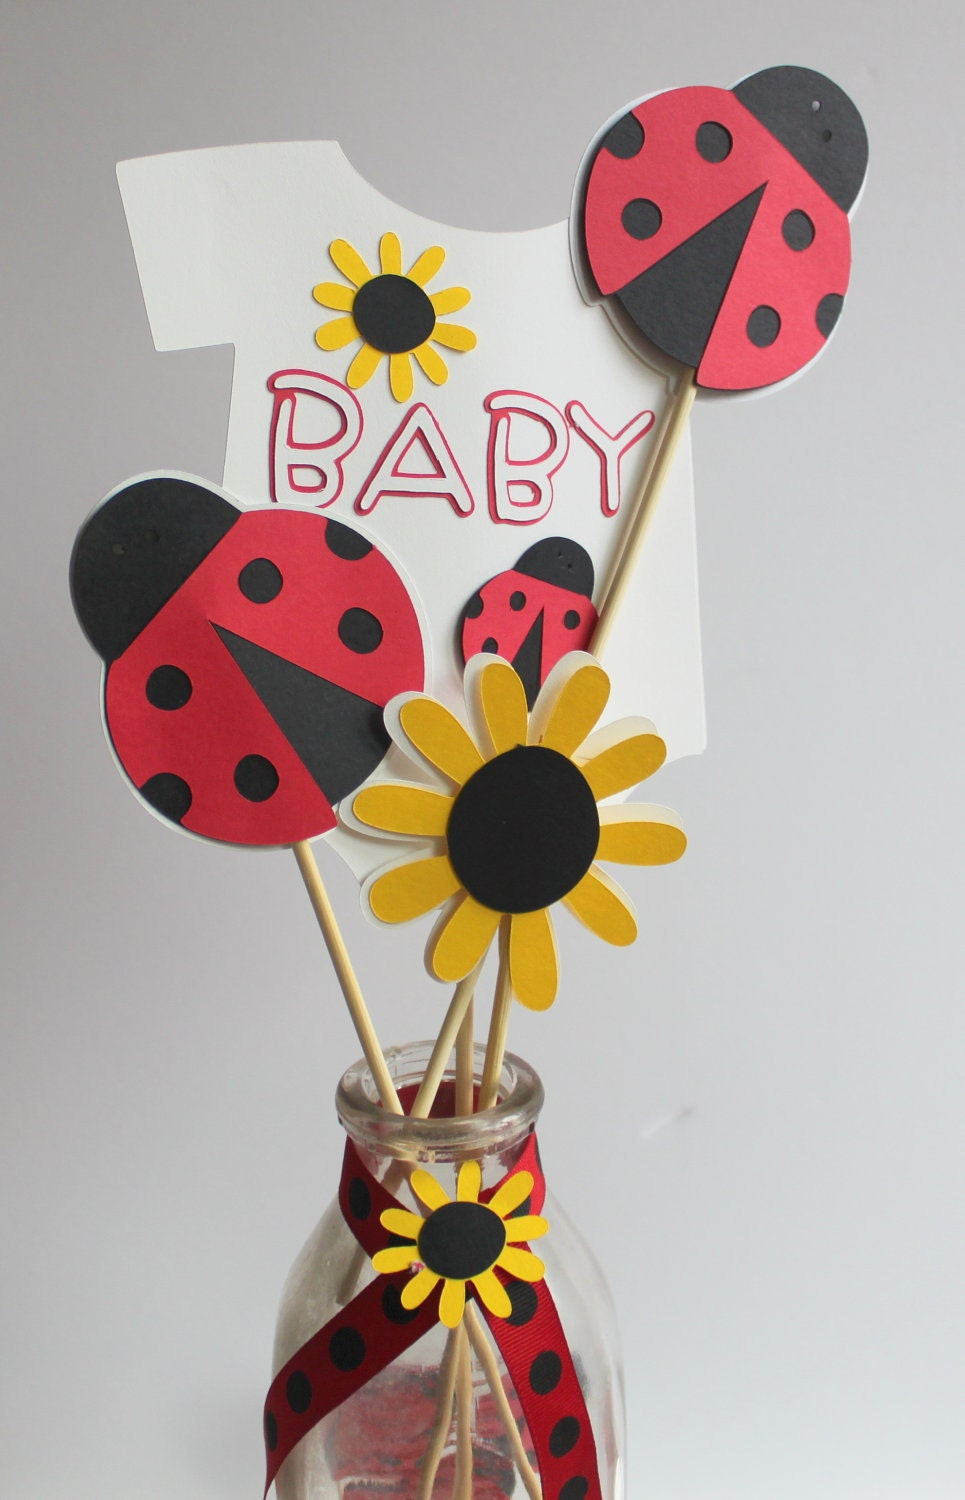 Lady bug baby shower centerpiece picks by calladoo on etsy